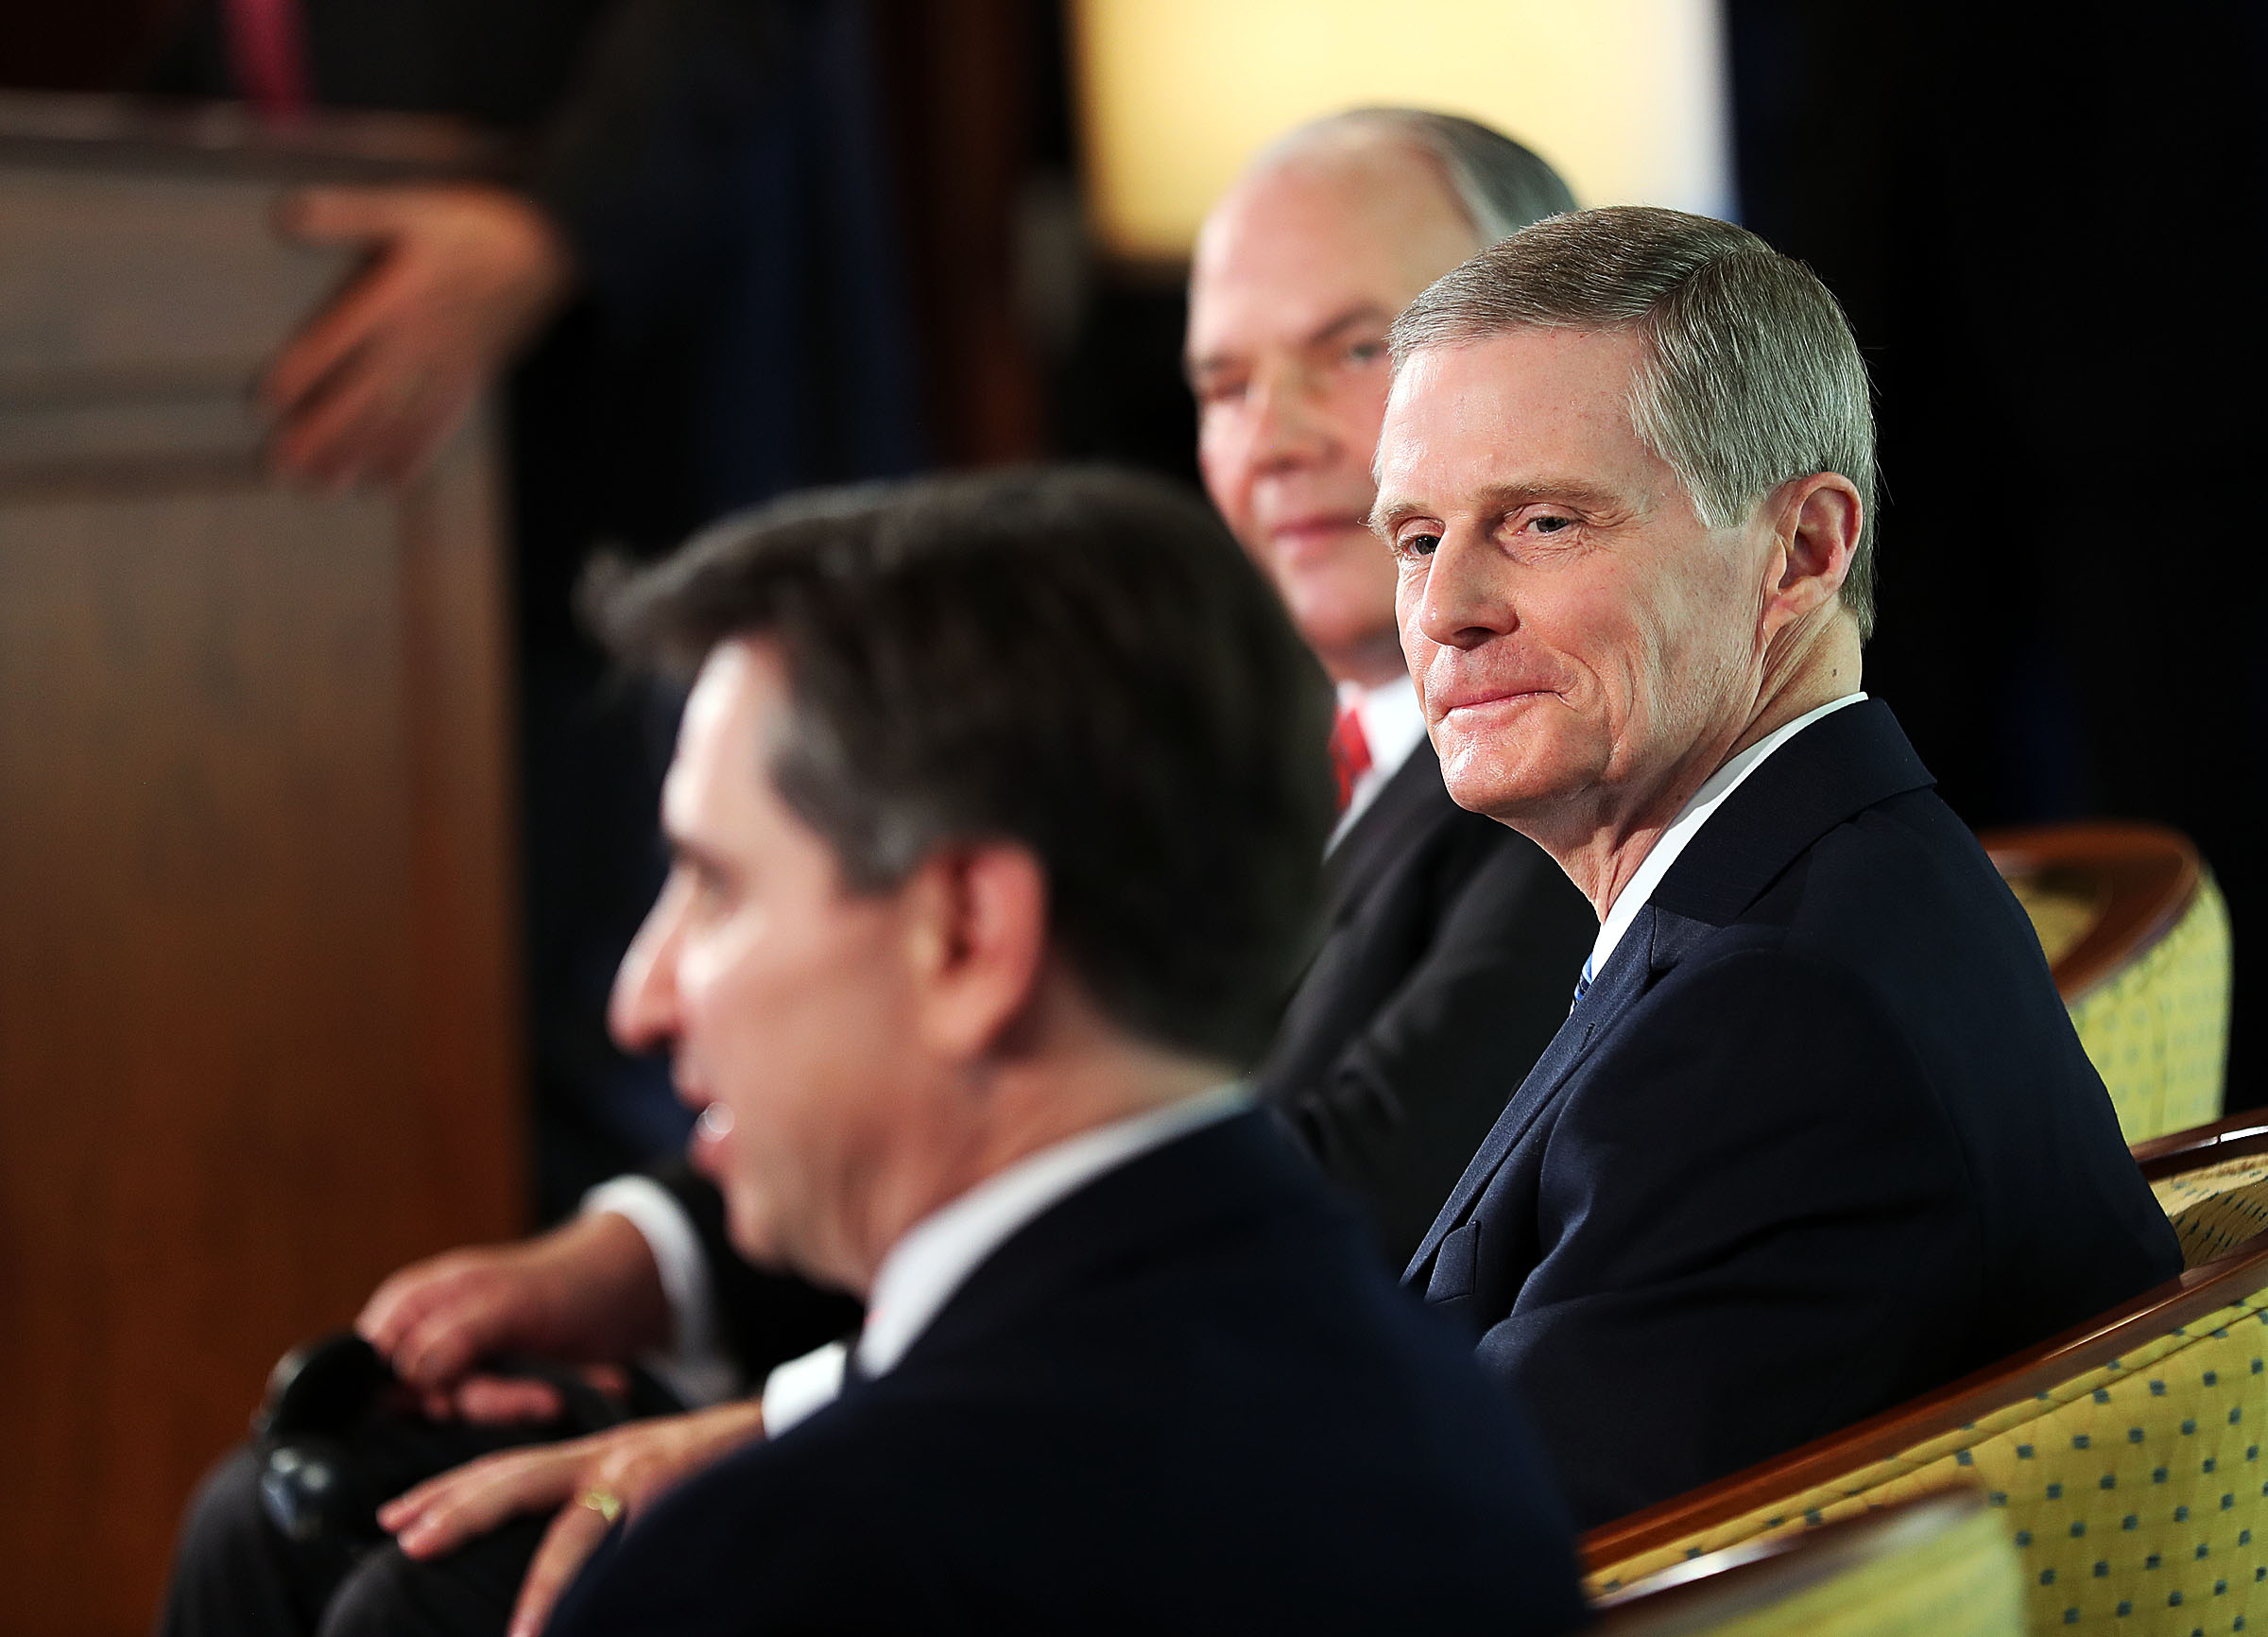 Elder Ronald A. Rasband, back, and Elder David A. Bednar of the Quorum of the Twelve Apostles listen as Elder Massimo De Feom, General Authority Seventy, answers a question during a press conference in the Rome Temple Visitors' Center of The Church of Jesus Christ of Latter-day Saints on Monday, Jan. 14, 2019.